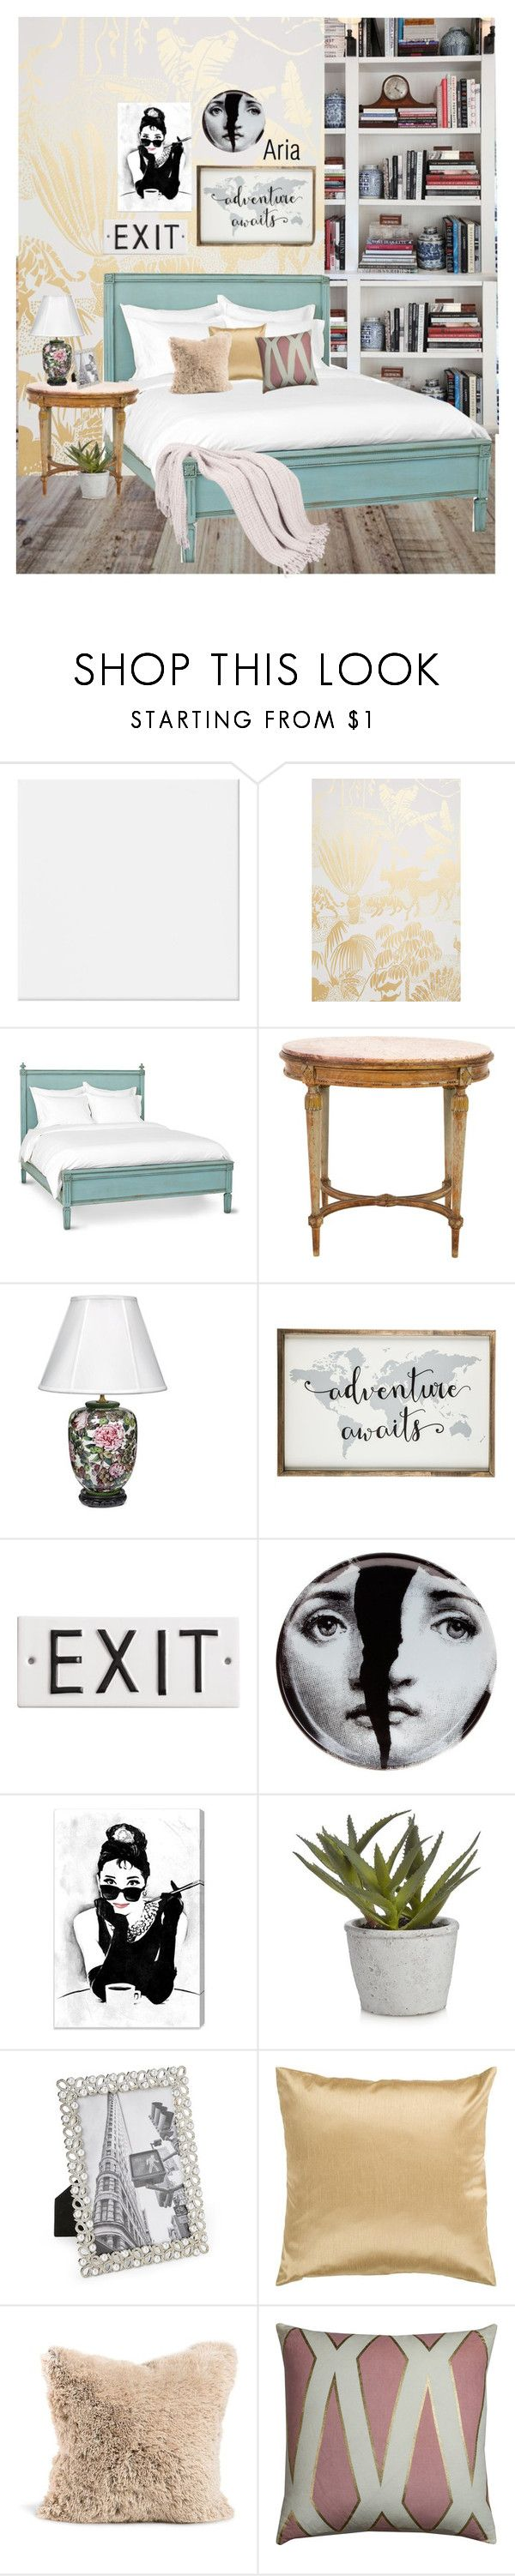 """""""Bed Room a la ARIA MONTGOMERY"""" by mara-glamour ❤ liked on Polyvore featuring interior, interiors, interior design, home, home decor, interior decorating, Aimée Wilder, Redford House, Fornasetti and Oliver Gal Artist Co."""